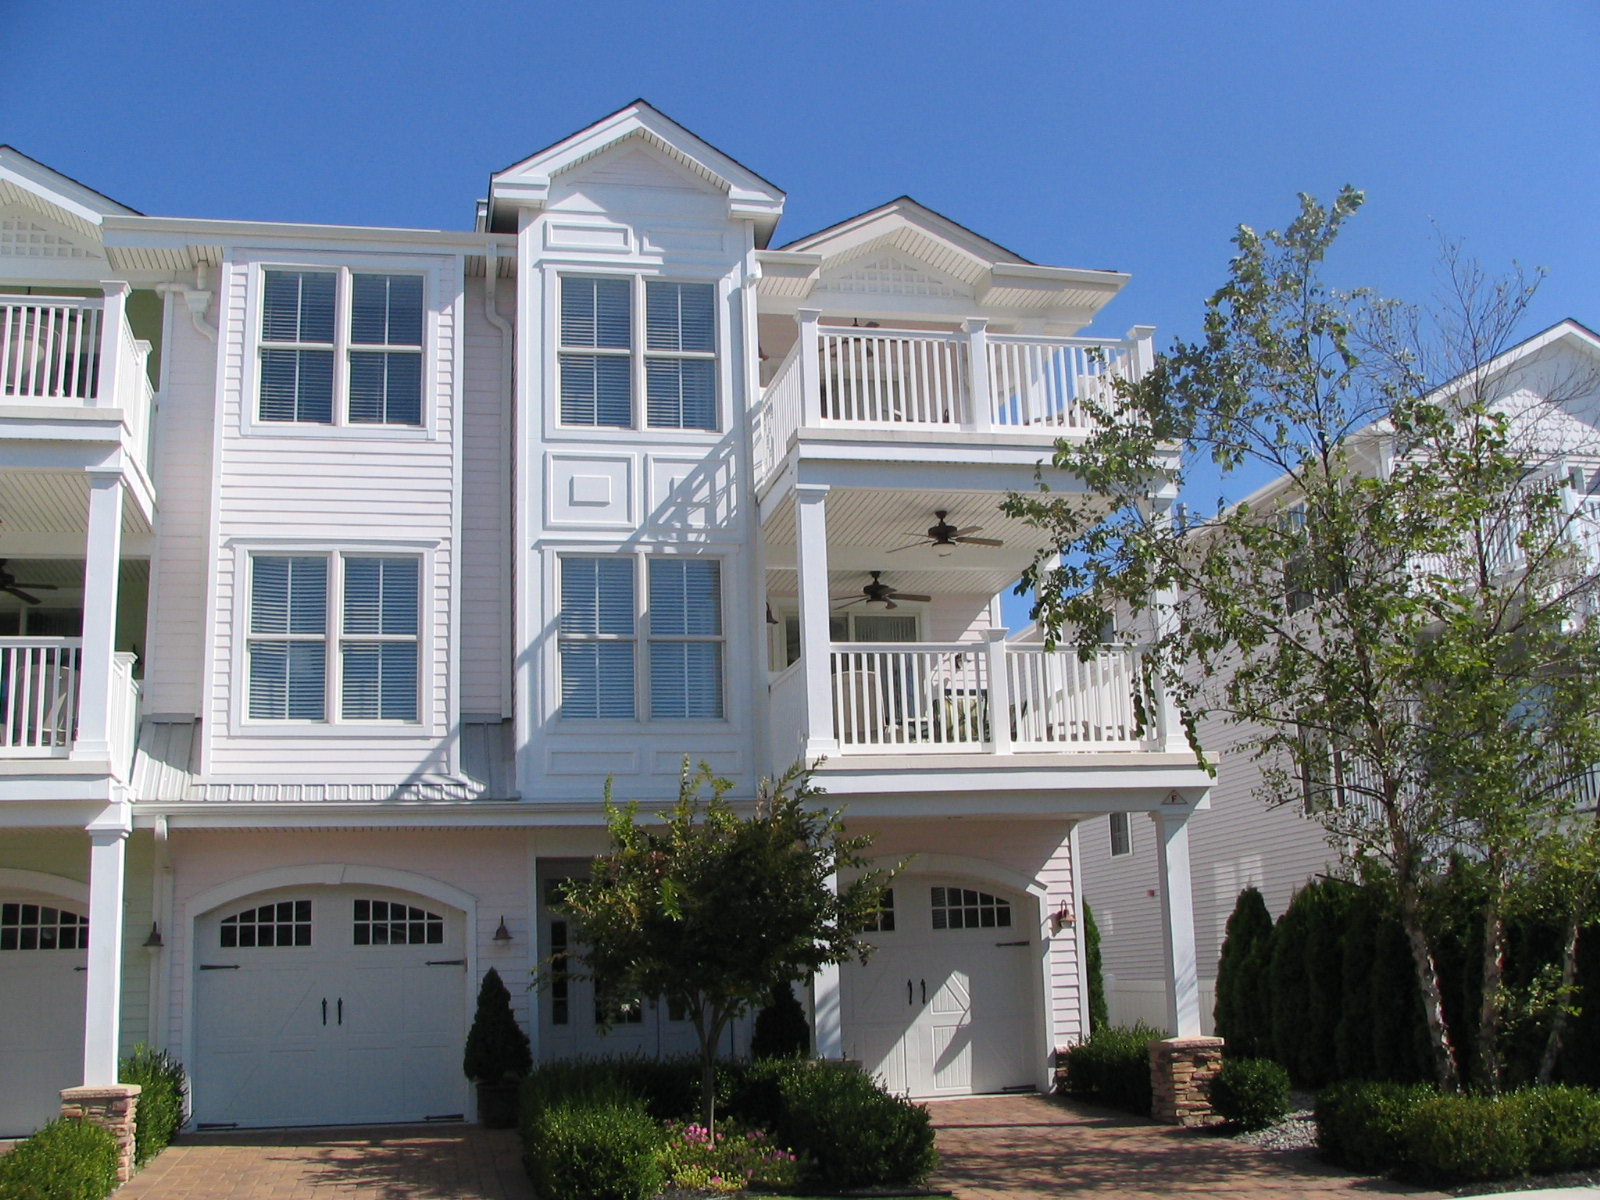 Hemingways By The Sea - Wildwood Condo Rentals